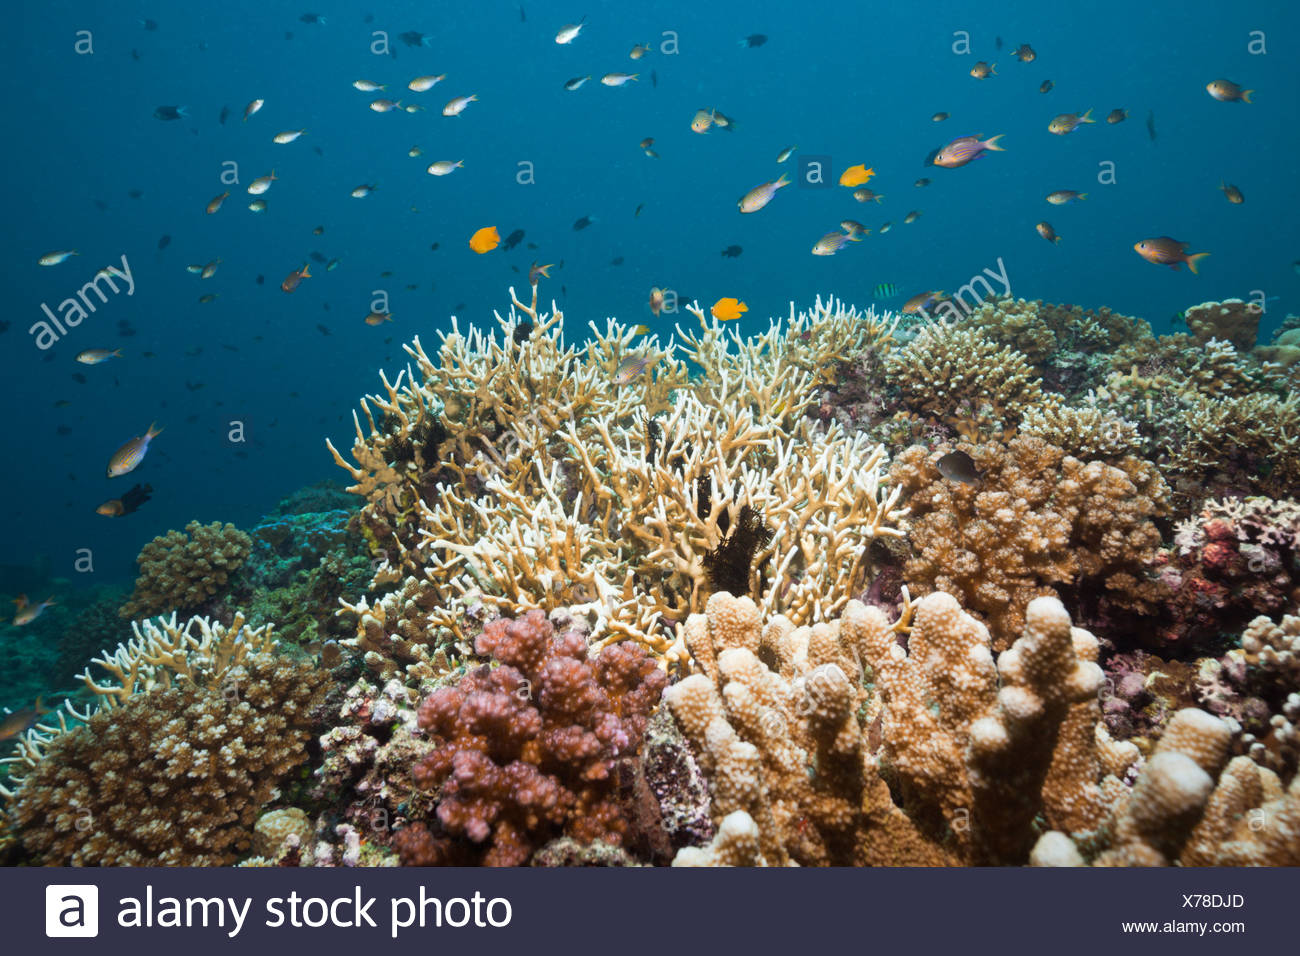 Coral Fishes over Hard Coral Reef, Chromis lineata, Cenderawashi Bay, West Papua, Indonesia - Stock Image